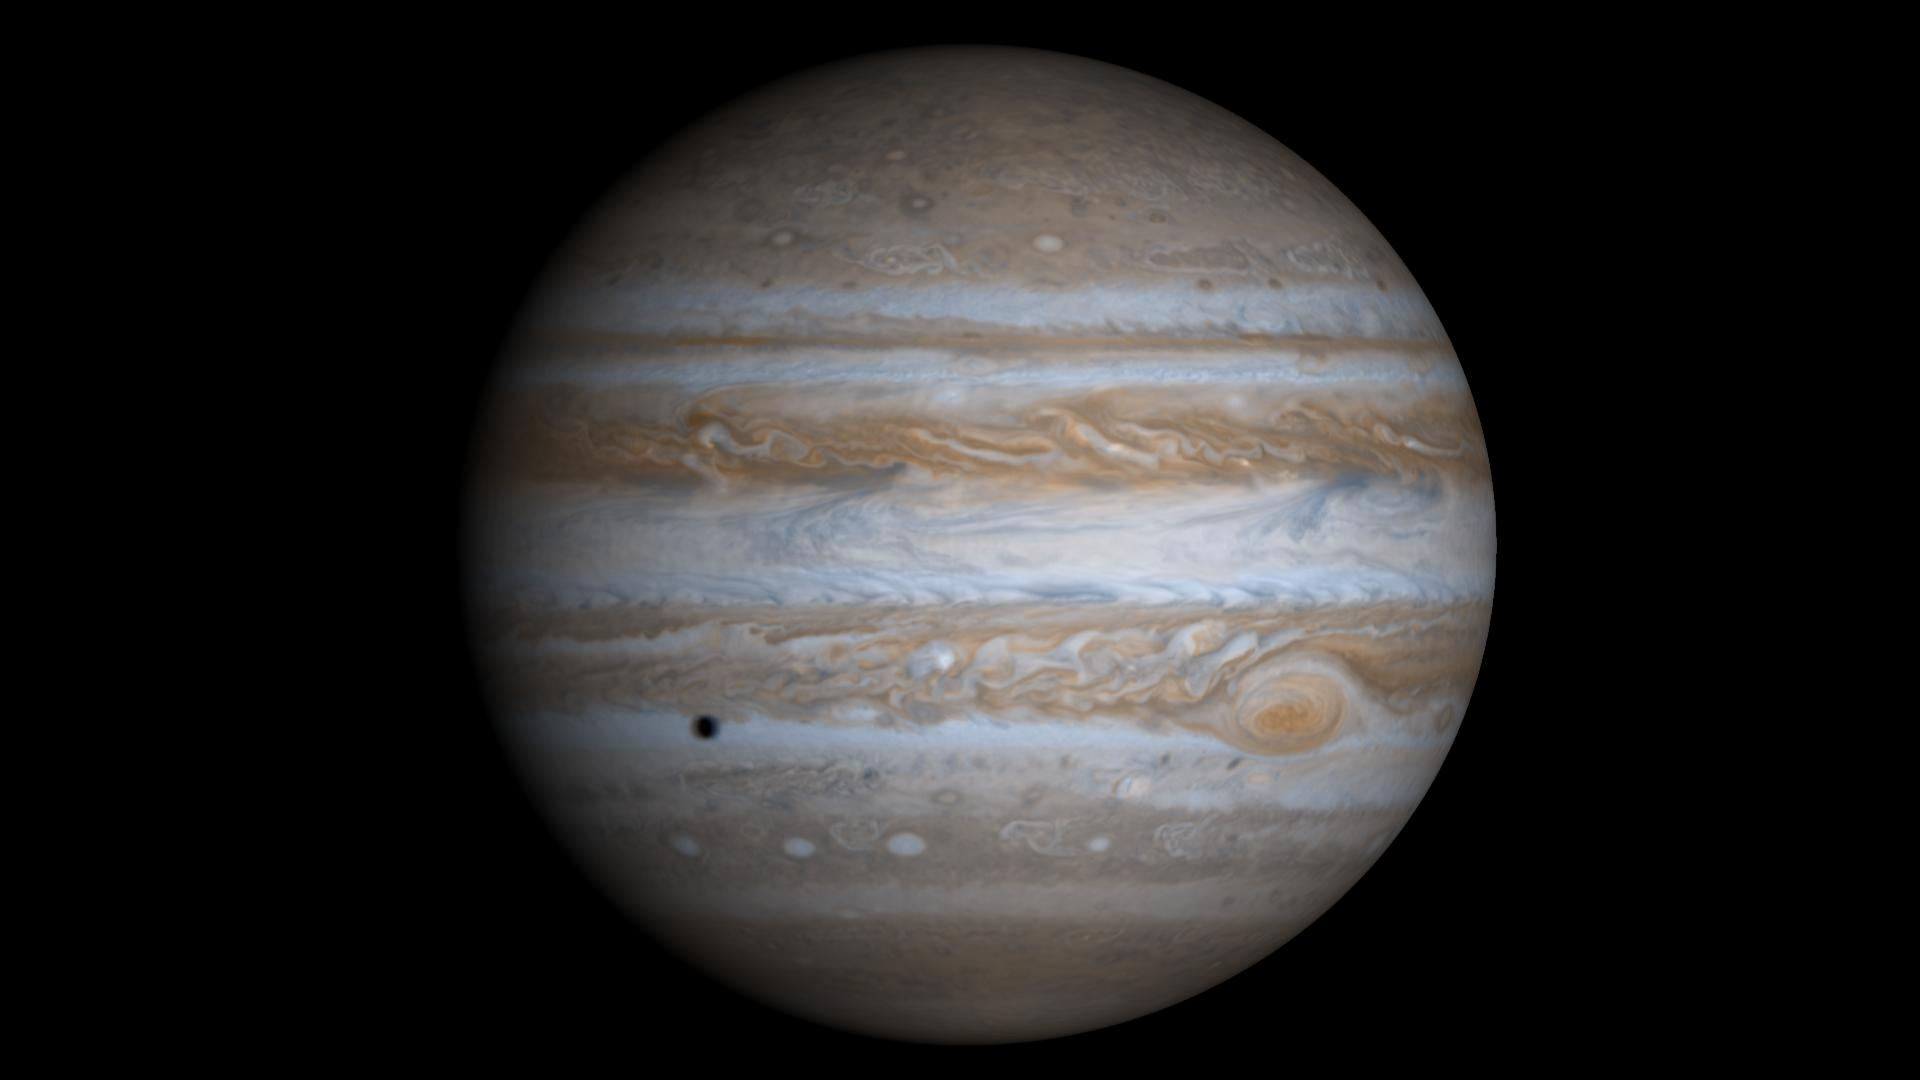 Space Images | High Resolution Globe of Jupiter